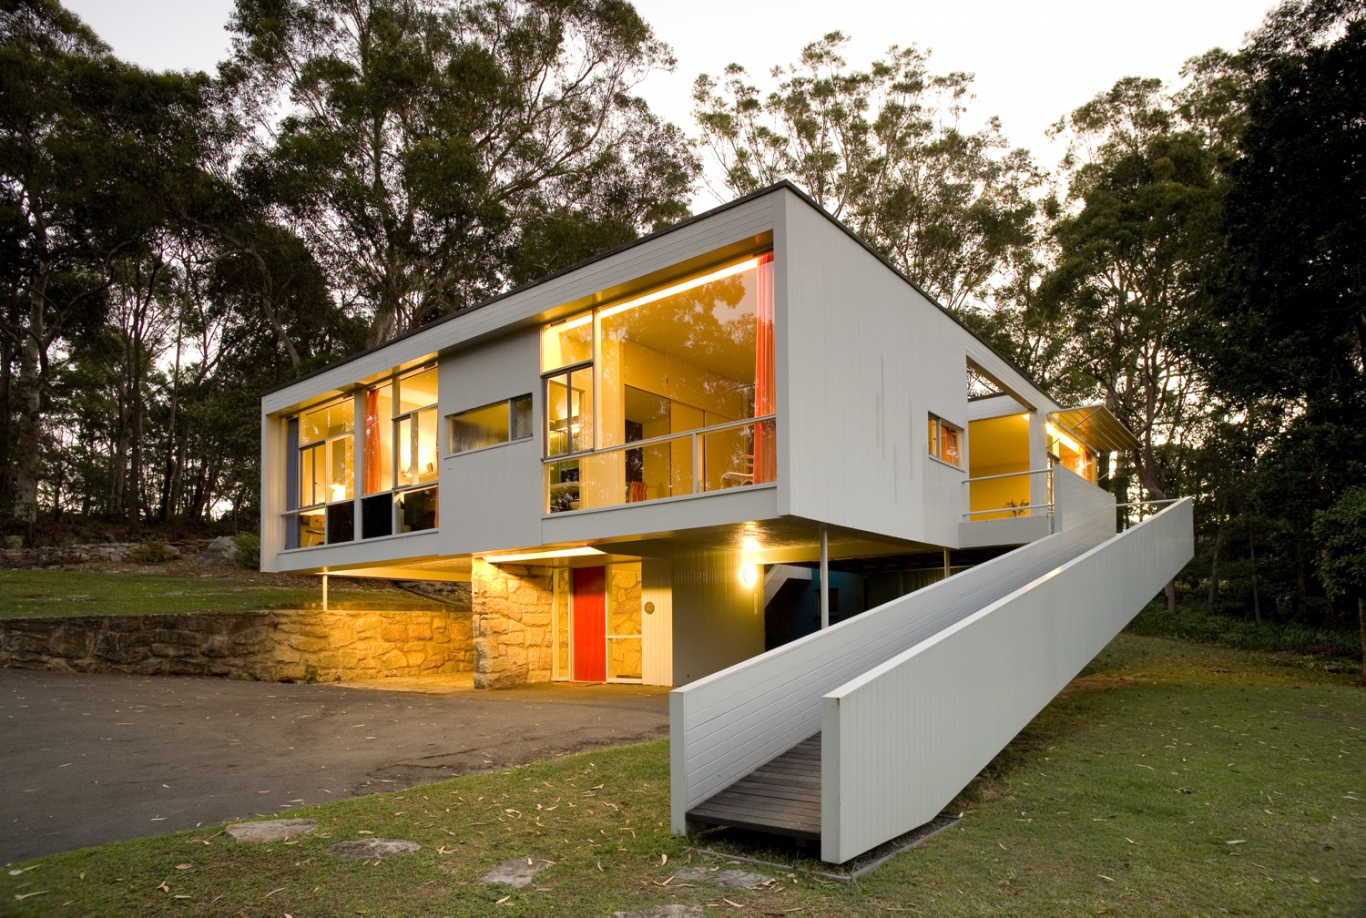 modern mobile homes with Over Loved Modern Conserving Rose Seidler House on Nist Iot Standards also Stock Photo Zimbabwe Traditional House 25068656 in addition Over Loved Modern Conserving Rose Seidler House further bayareahome additionally Greg Louganis Back On Board b 3086380.